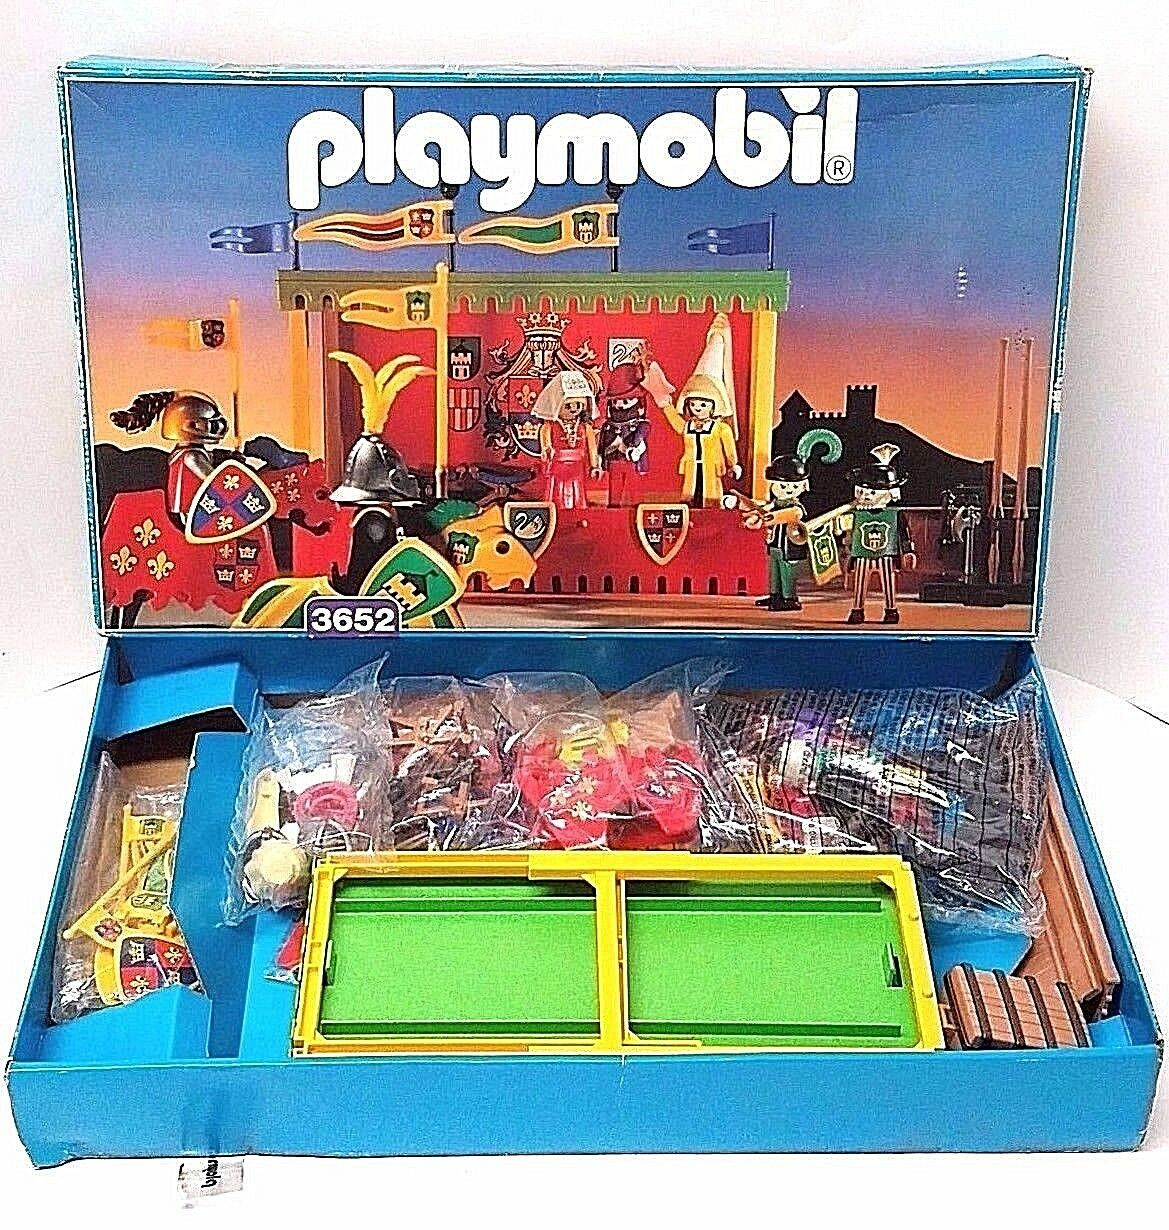 Playmobil Medieval Jousting Tournament Royal Court 3652 COMPLETE NEW IN BOX '93